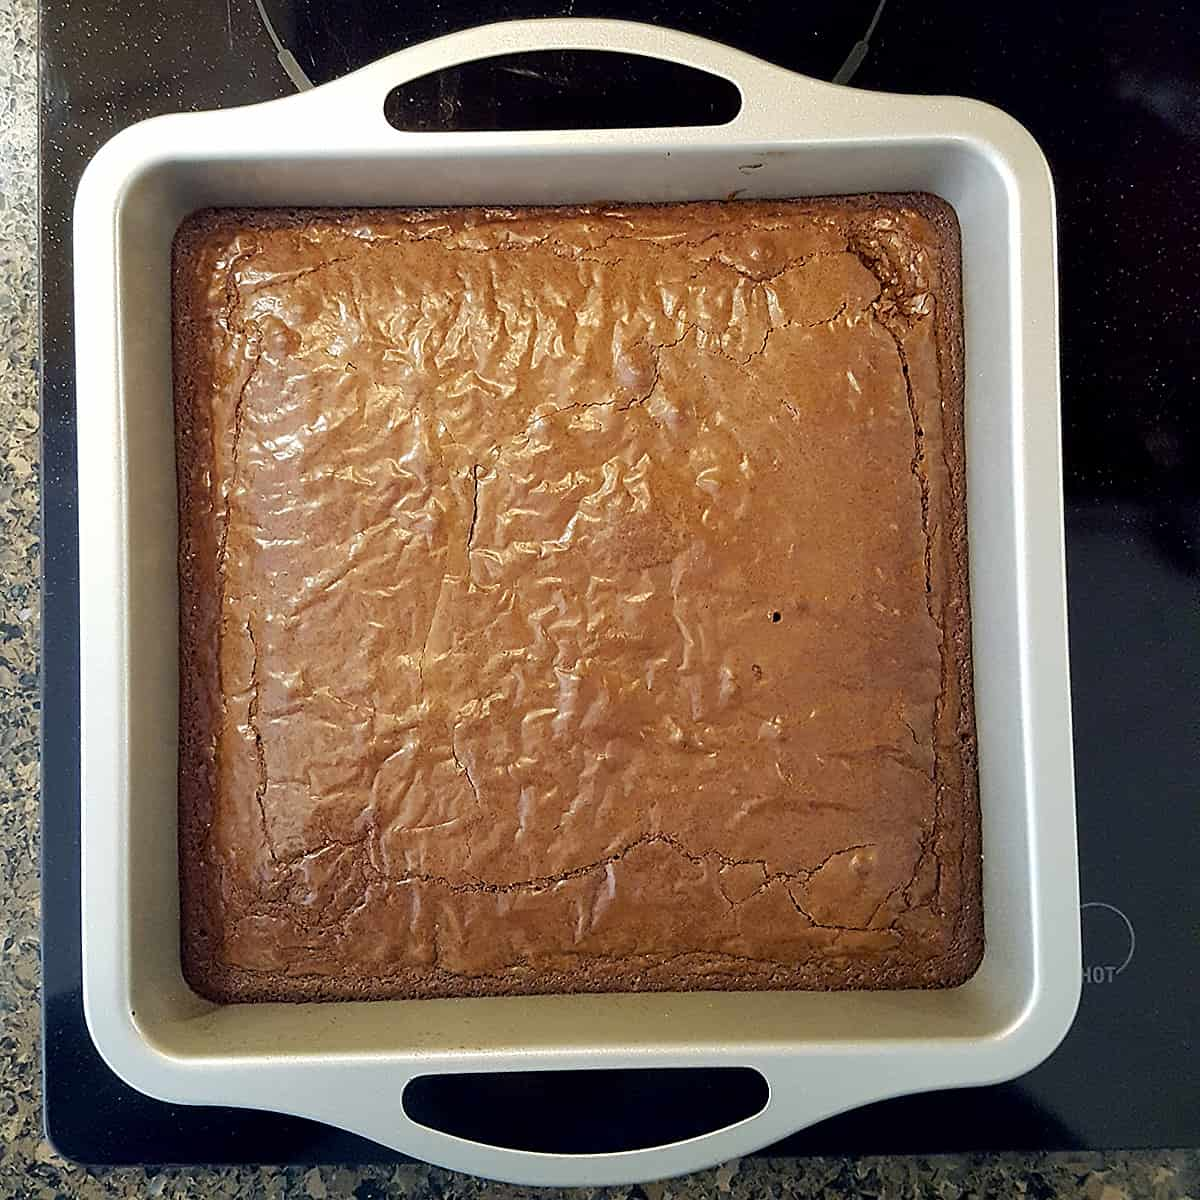 Baking pan containing cooked and cooled brownies.